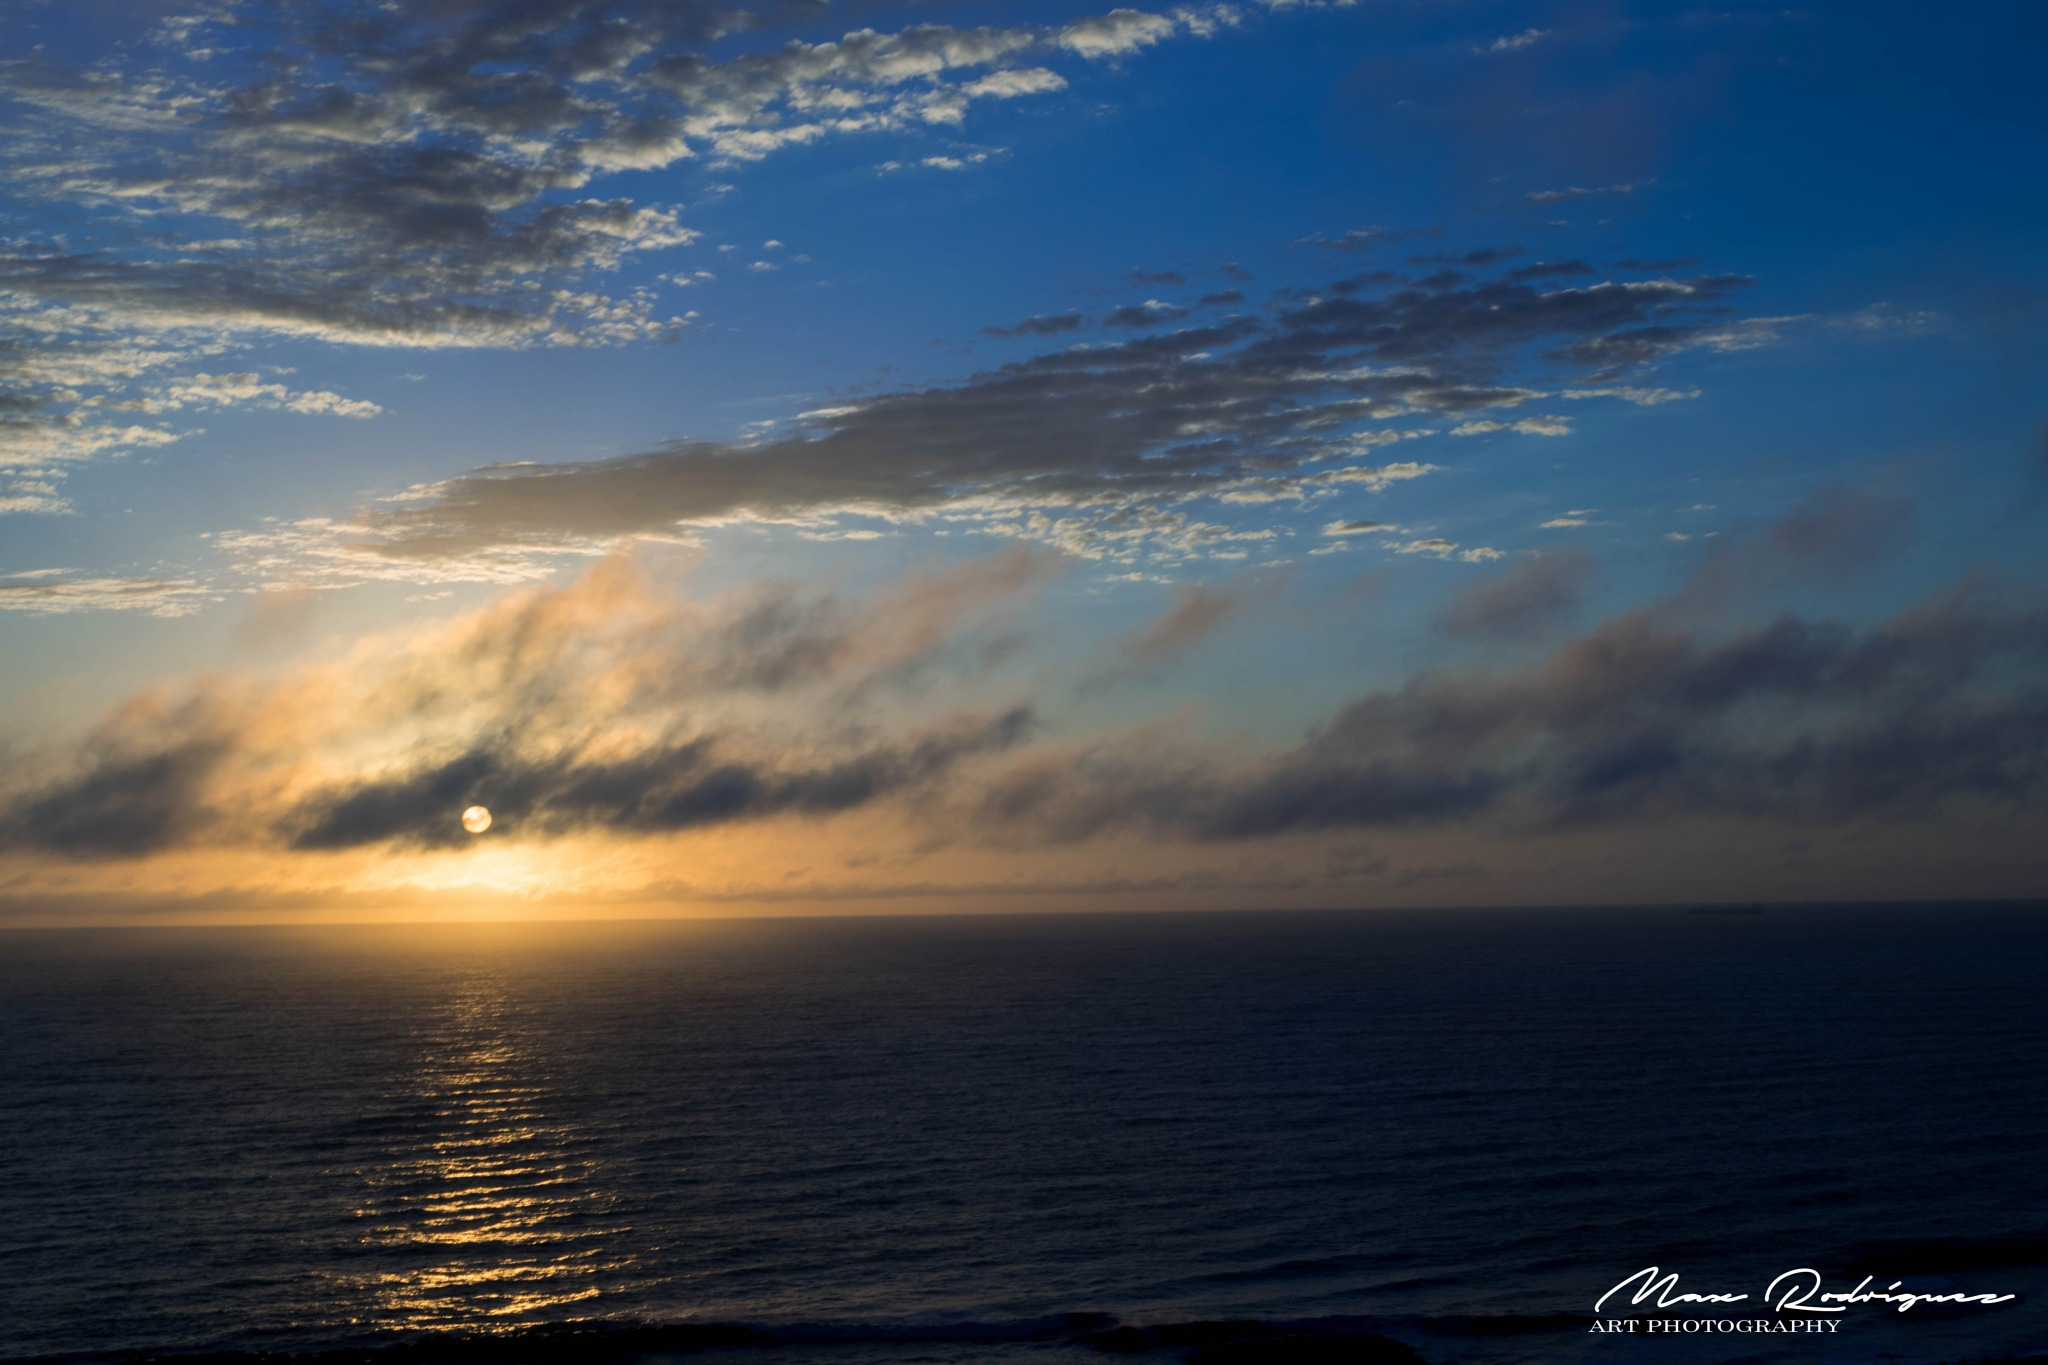 Cloudy Sunrise on the Sea by Max Rodríguez